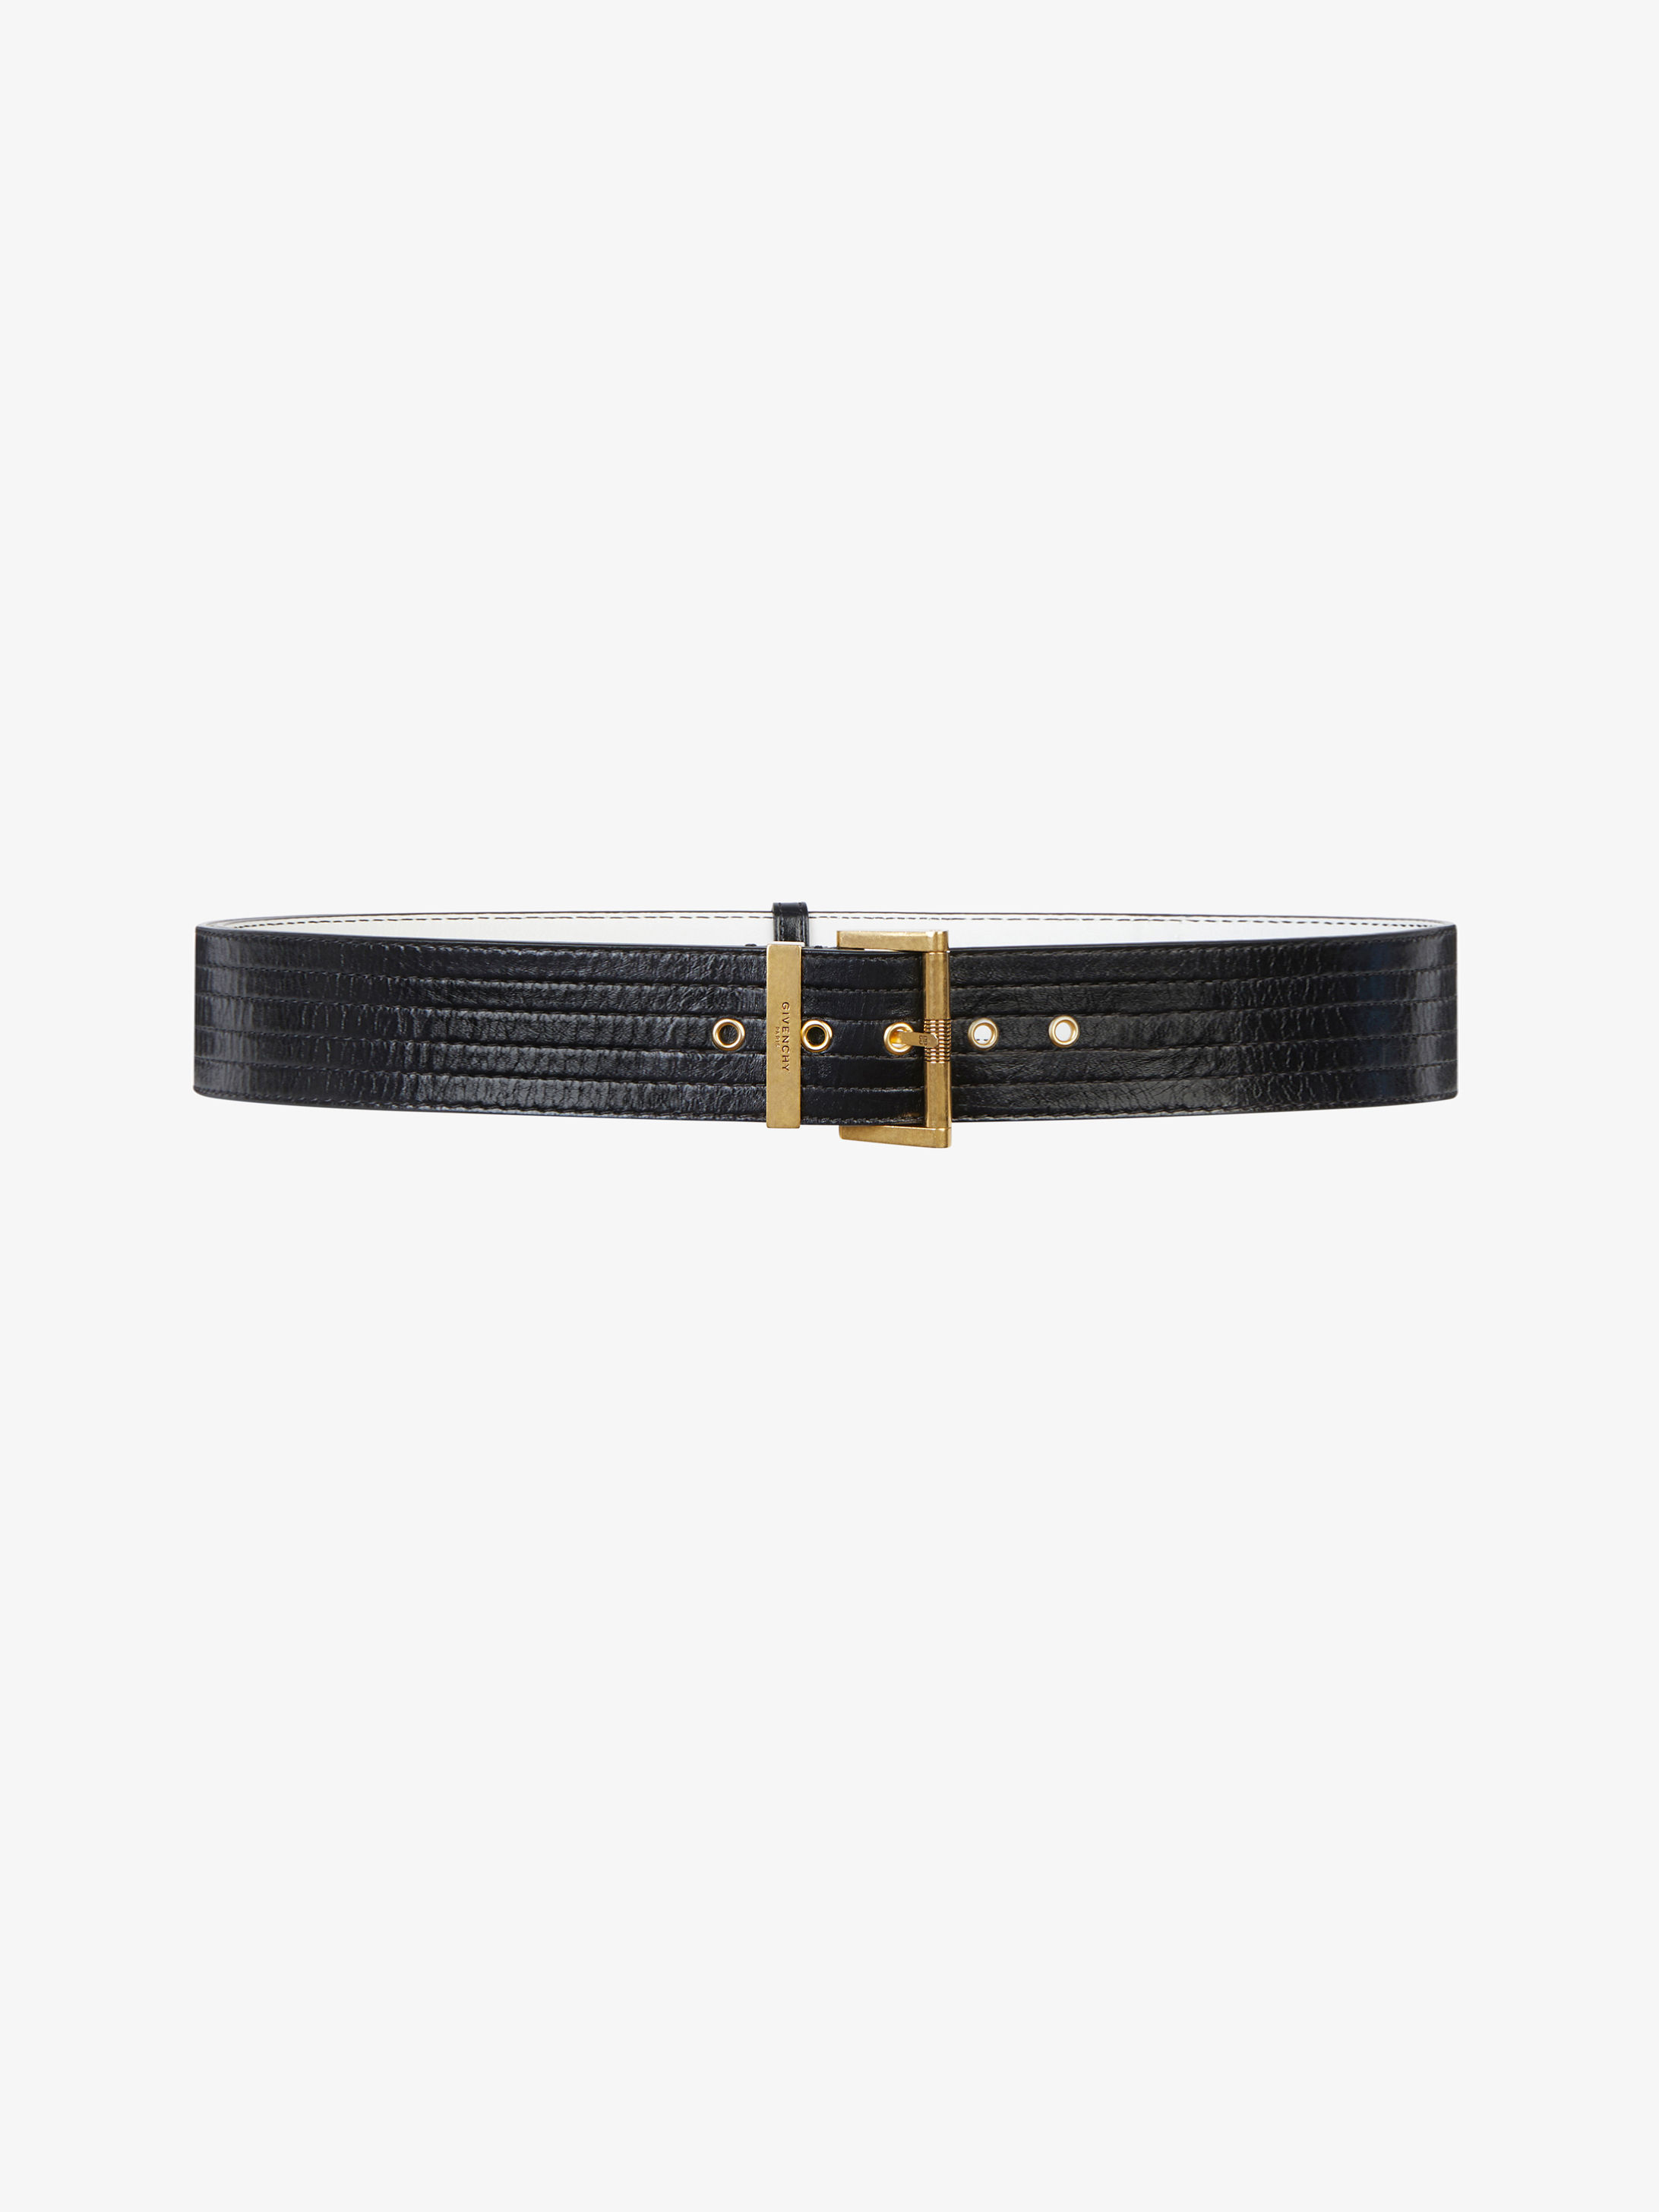 Two-tone topstich leather belt